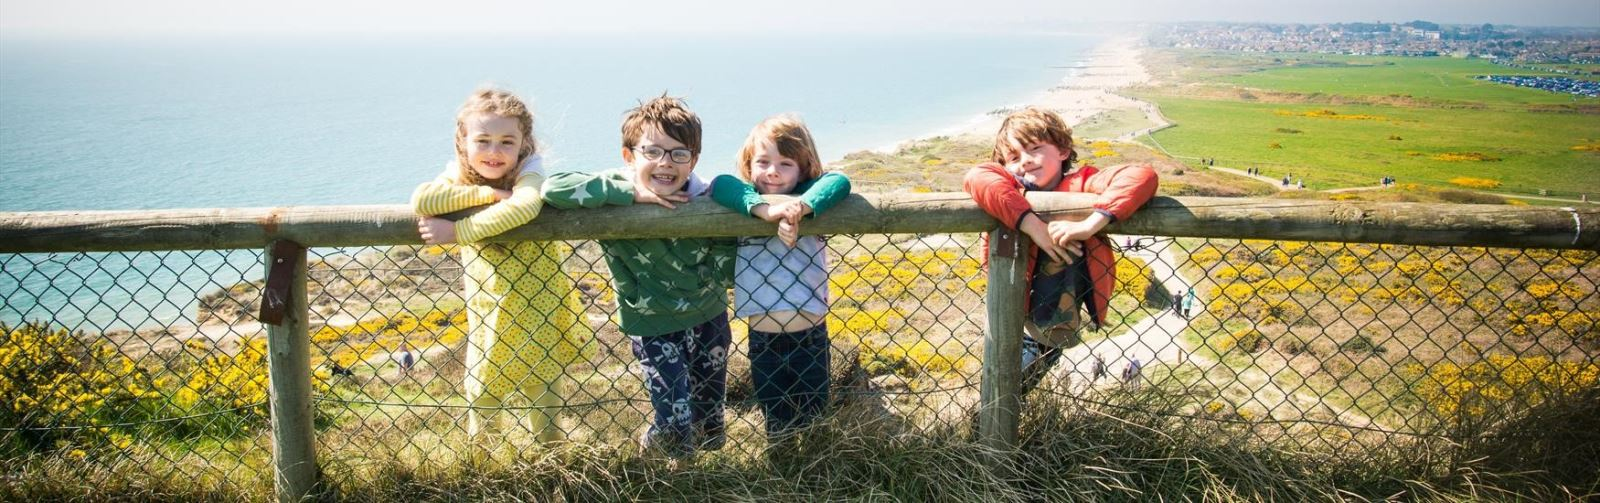 Kids posing for photo on a fence with the seaside behind them